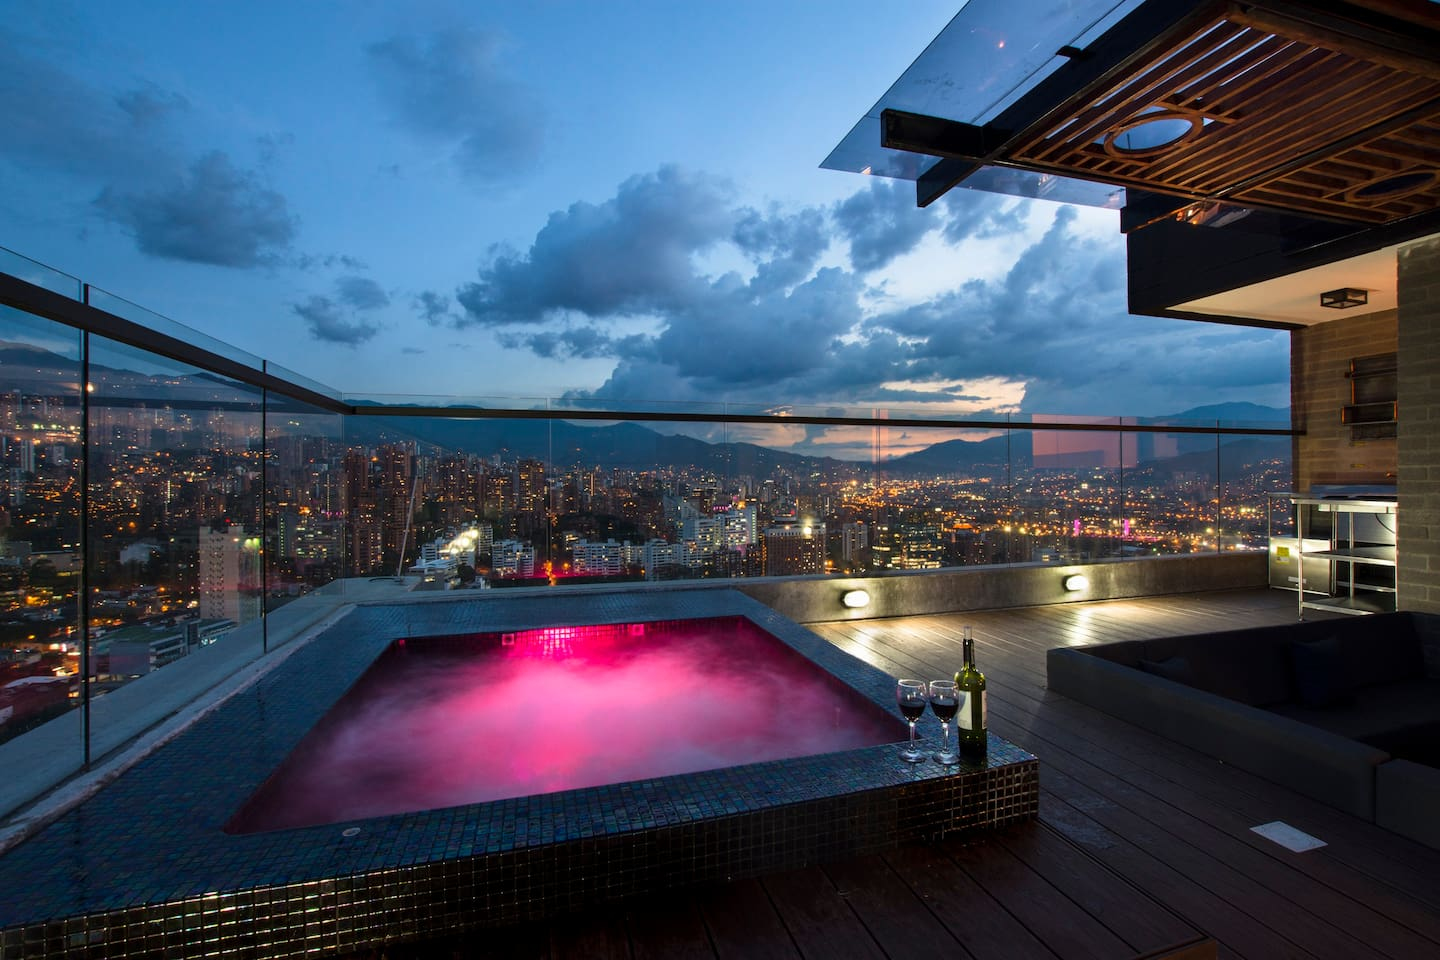 THE PENTHOUSE HAS A HUGE SPECTACULAR TERRACE WITH YOUR OWN PRIVATE INFINITY POOL, JACUZZI, SKY LOUNGE AND THE BEST VIEWS IN MEDELLIN!!!